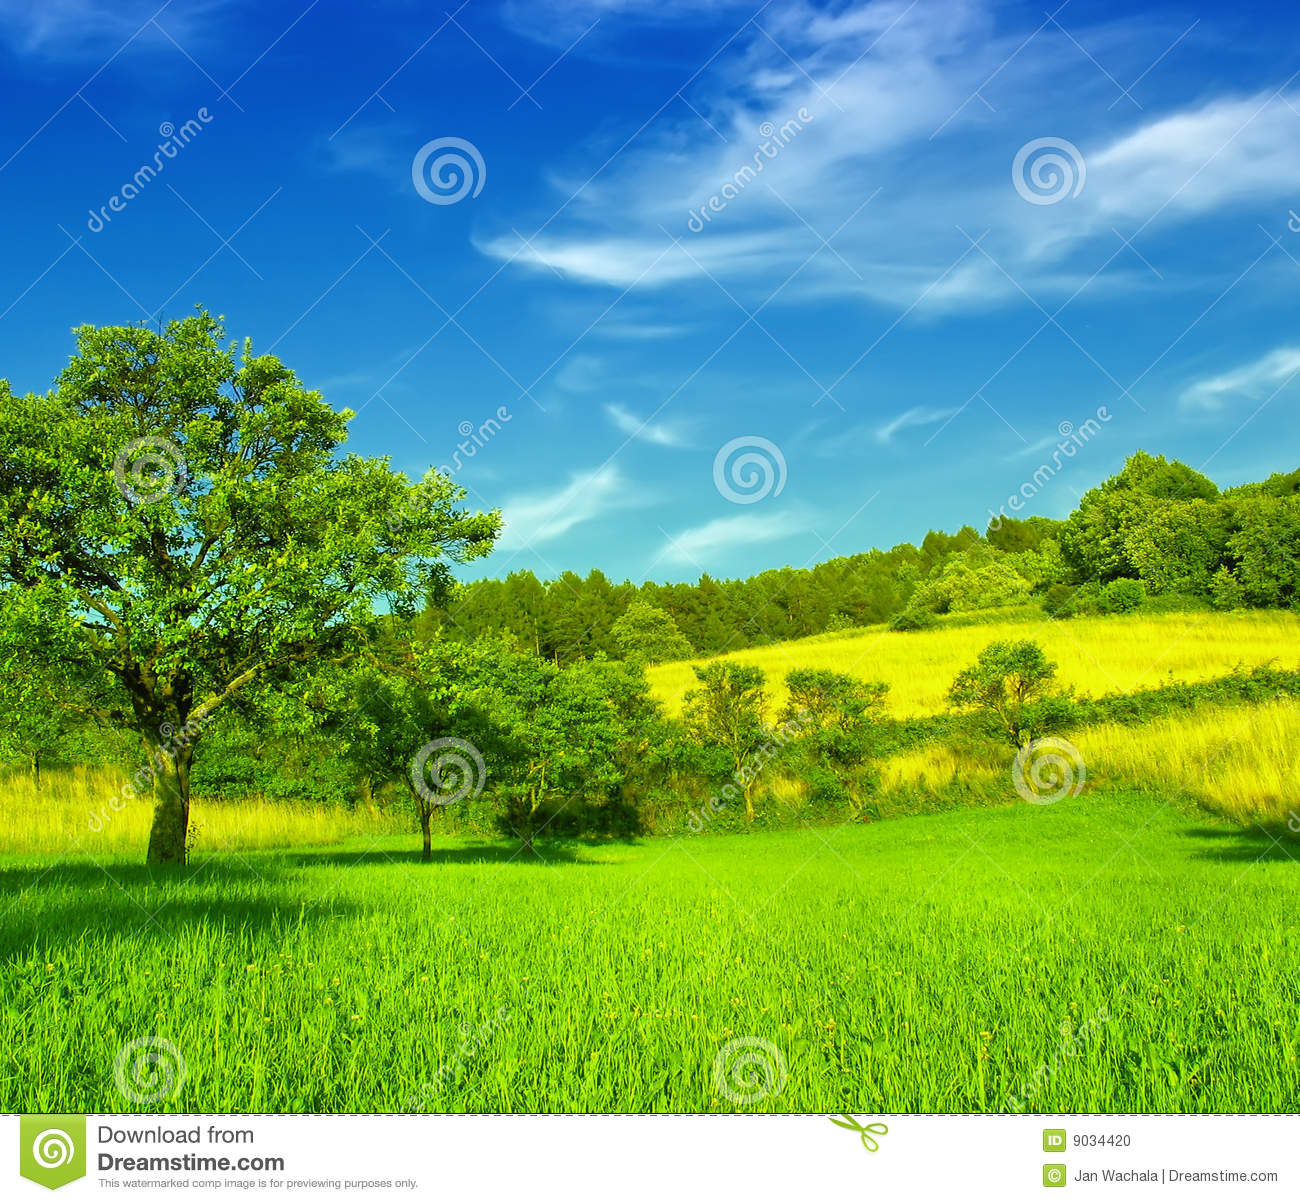 Http Www Dreamstime Com Stock Photo Beautiful Field Image9034420